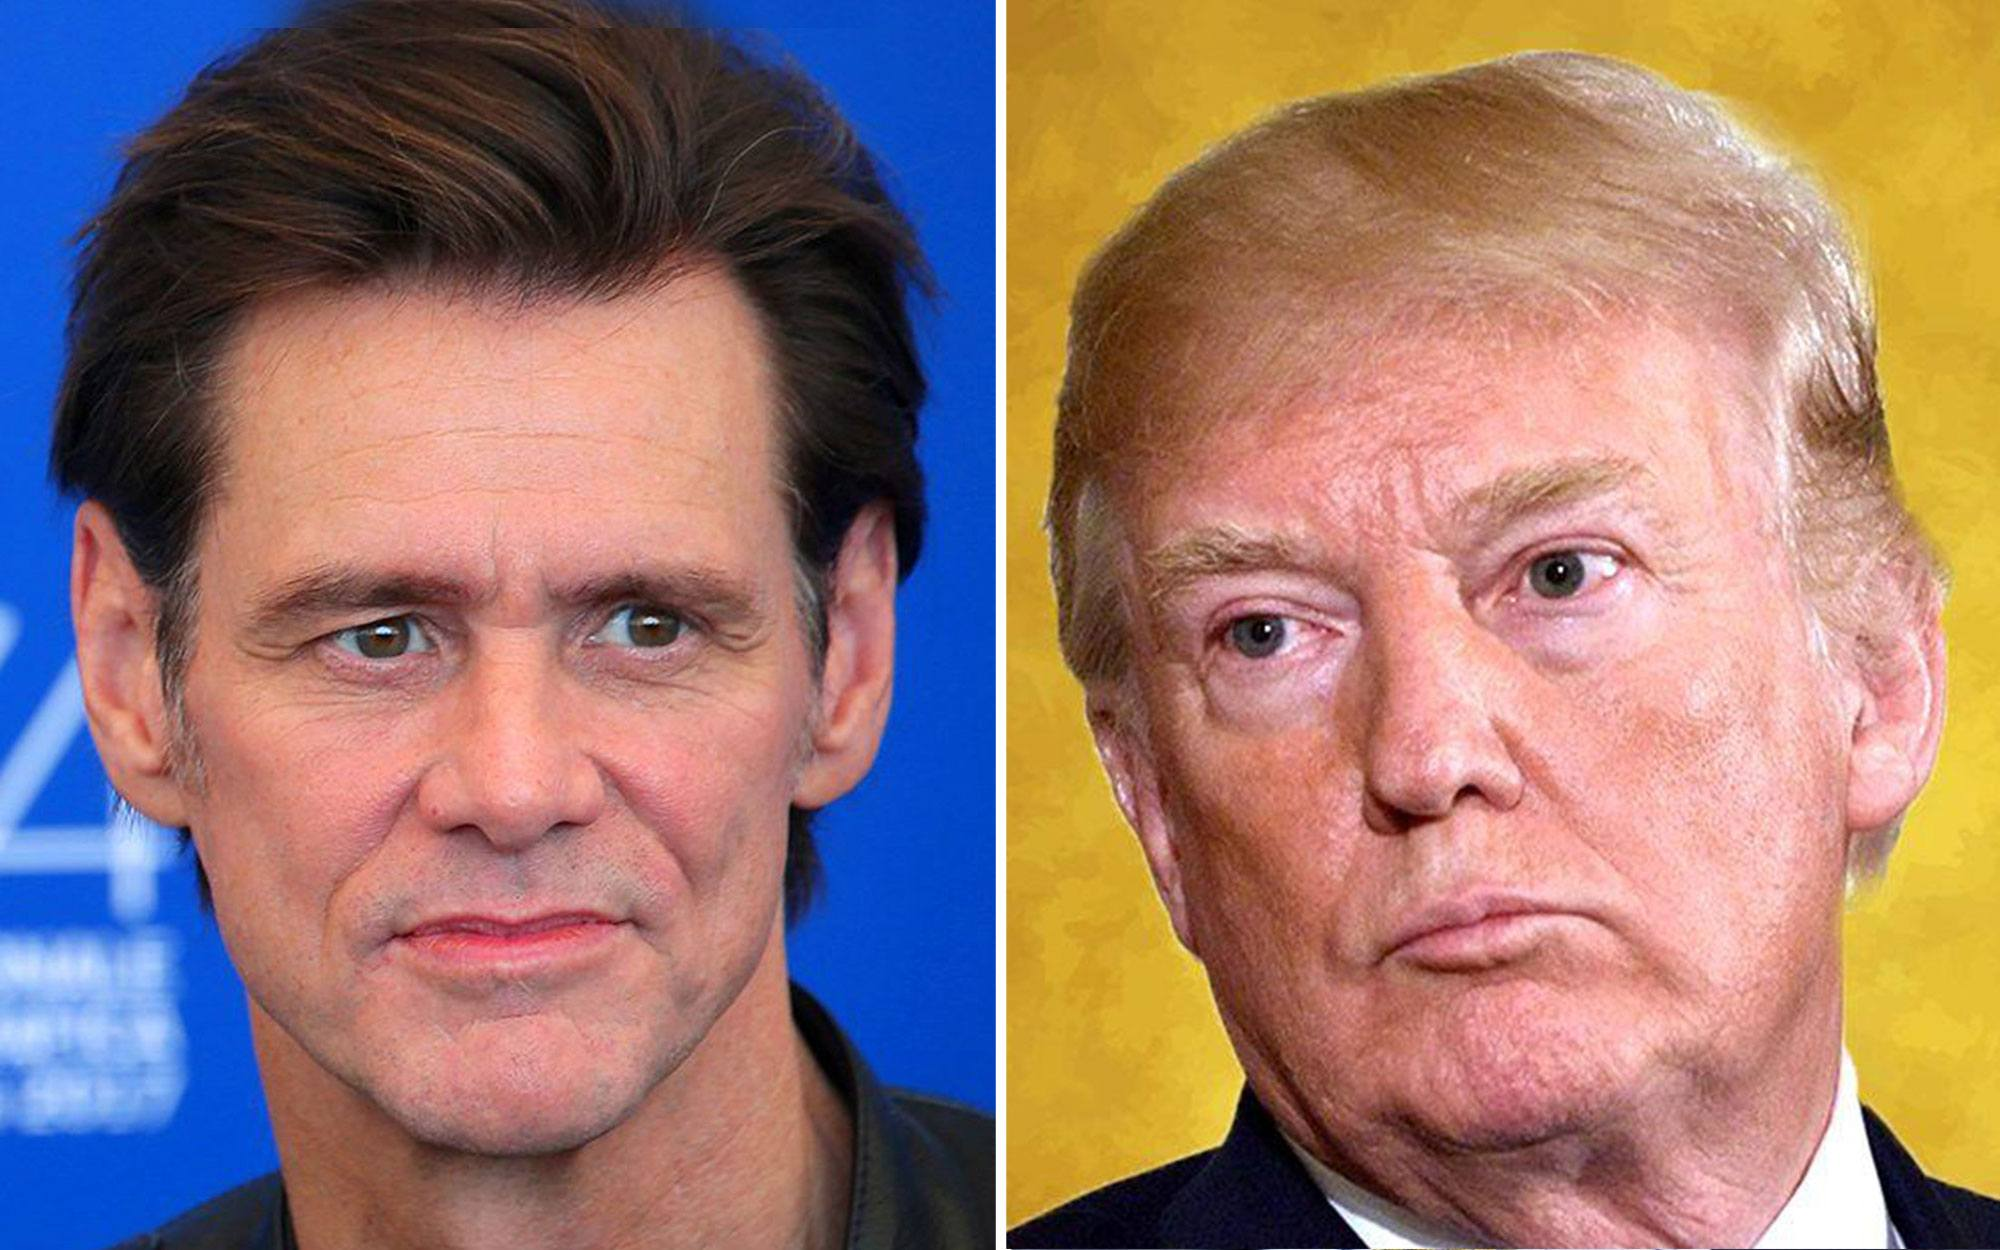 Jim Carrey Accuses President Donald Trump of 'Manslaughter'